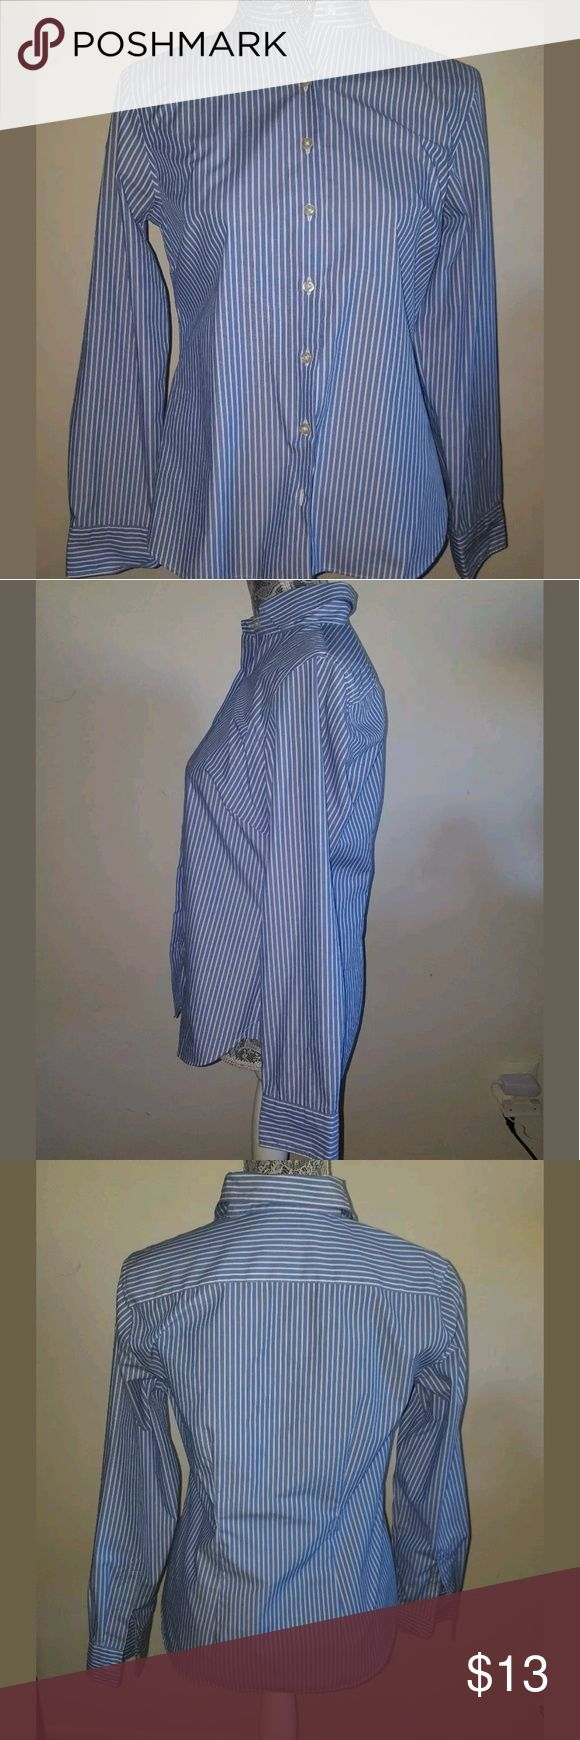 "Lands' End Oxford Long Sleeve Blue White Stripes Lands' End Women's Shirt Oxford Long Sleeve Blue White Stripe Size 6 No Ironall saintslength 26""bust 30"" 005 Lands' End Tops Button Down Shirts"